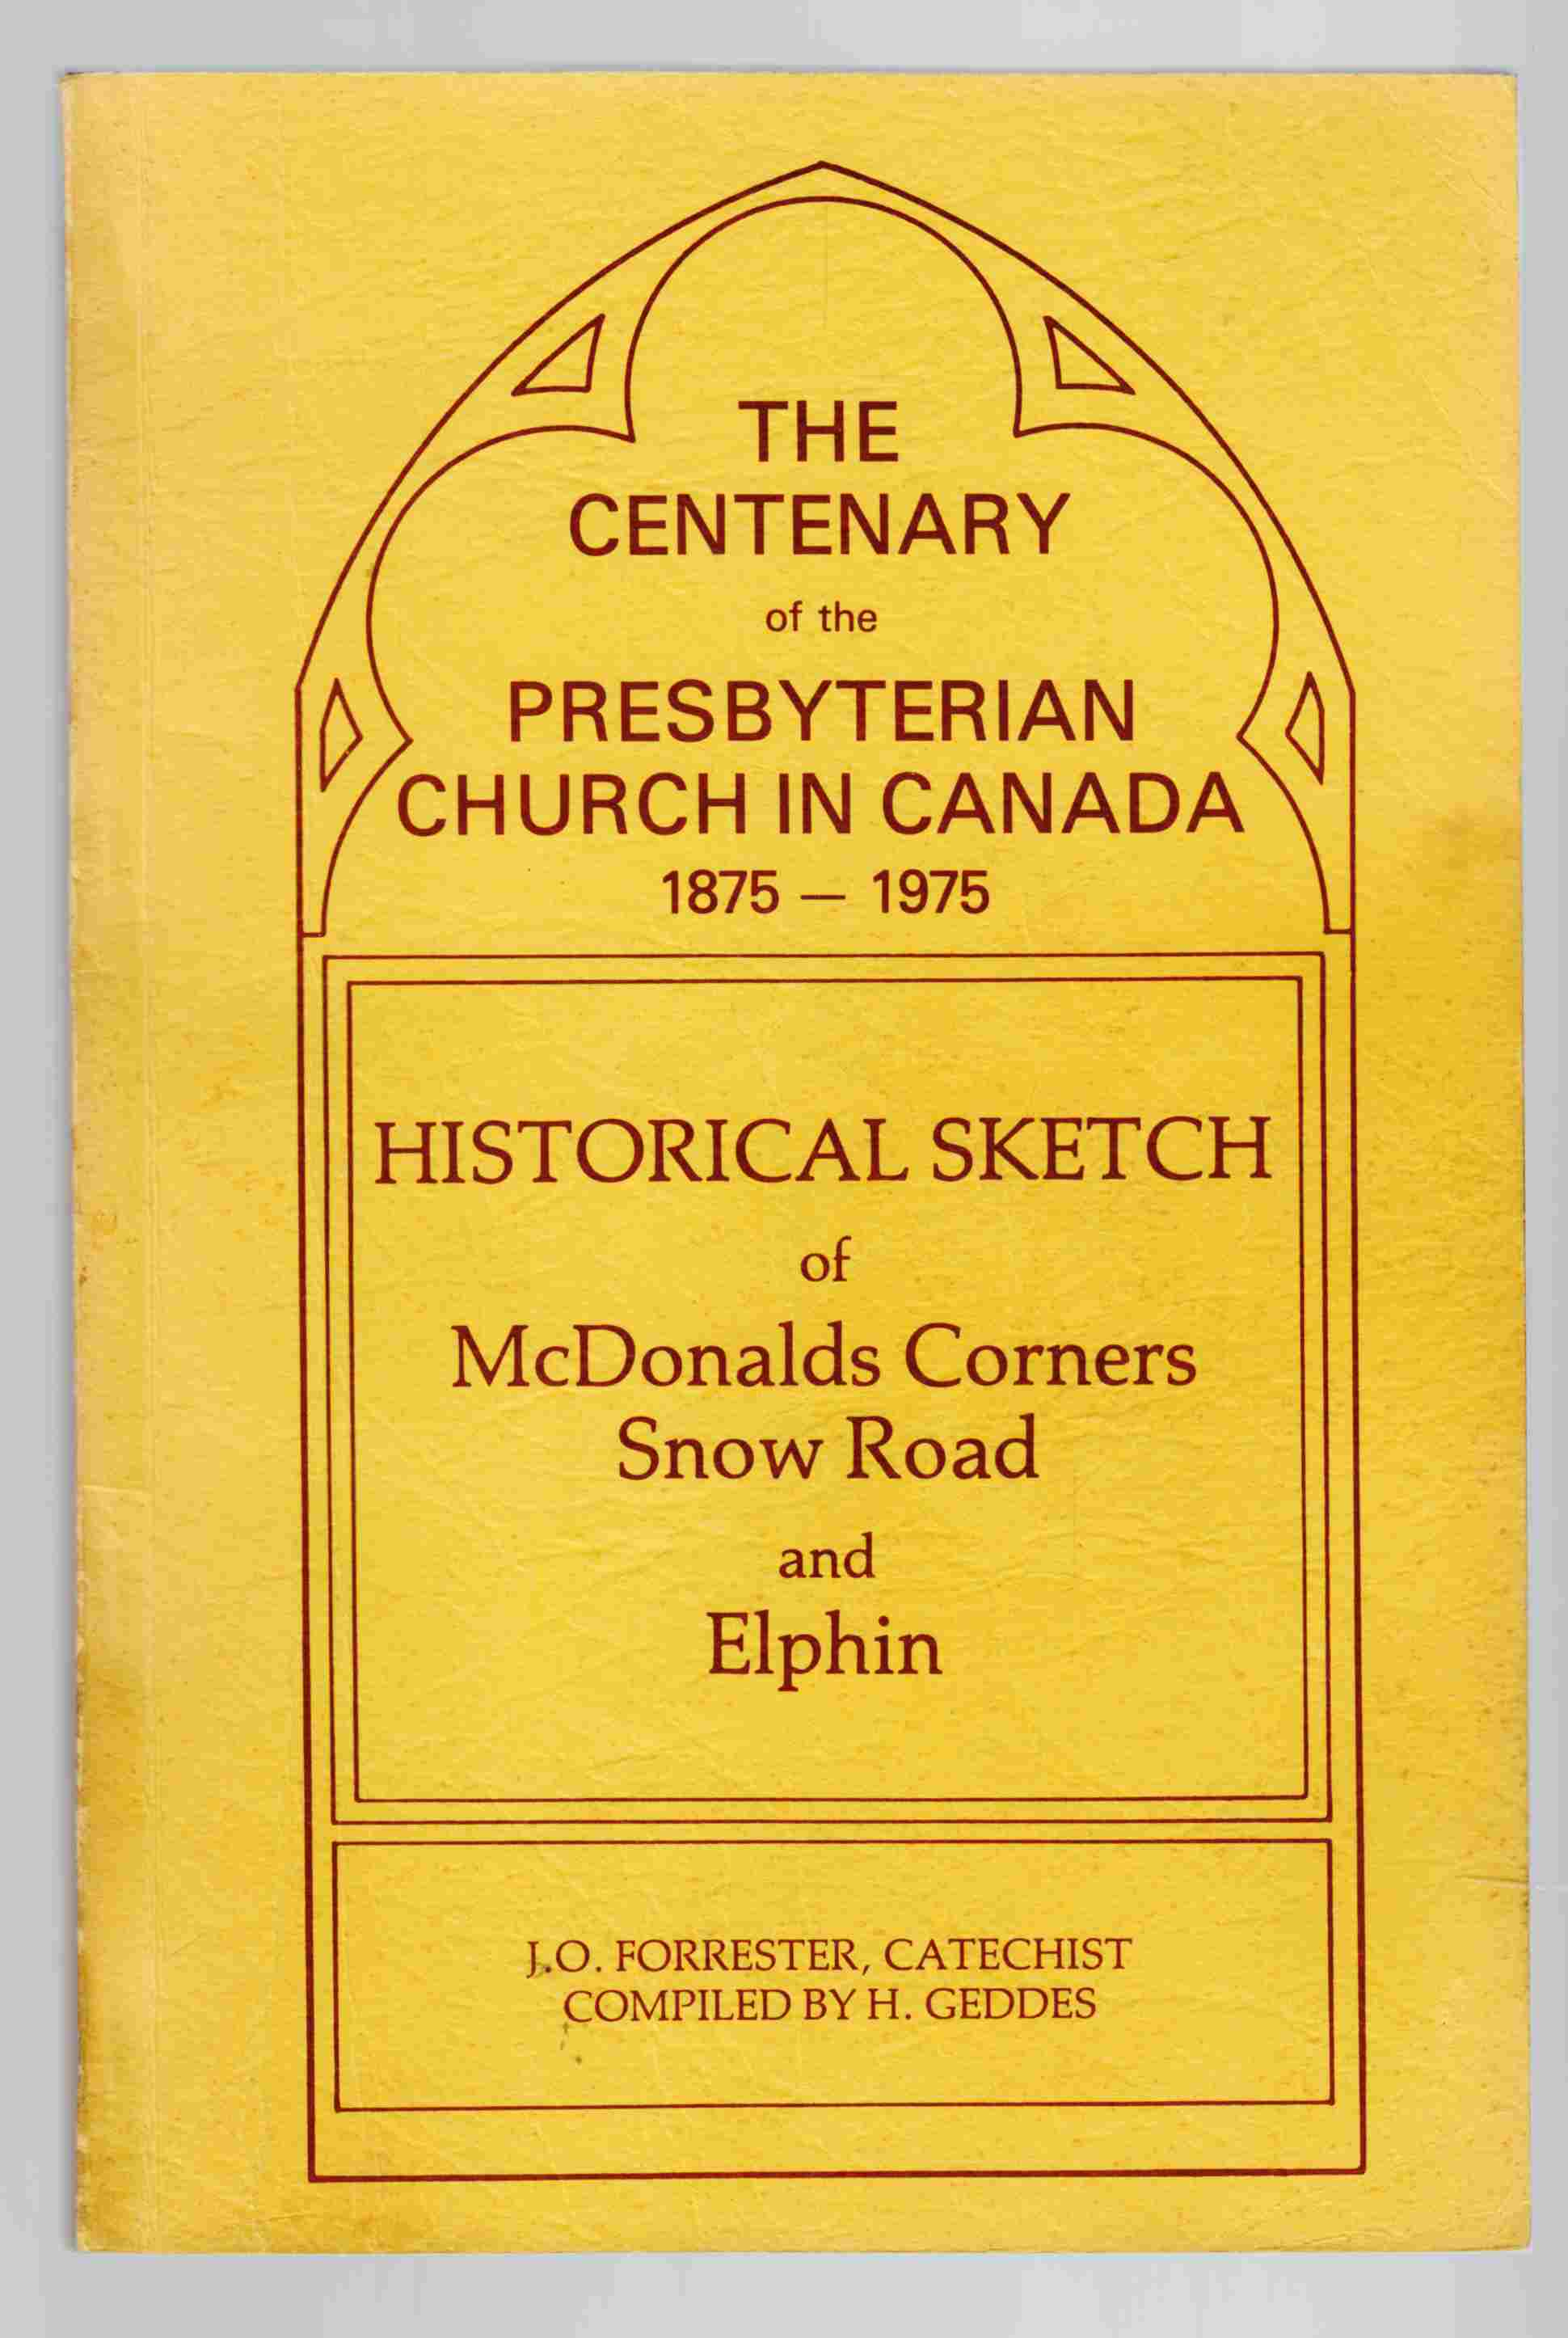 Image for The Centenary of the Presbyterian Church in Canada 1875 - 1975 Historical Sketch of Mcdonalds Corners, Snow Road and Elphin